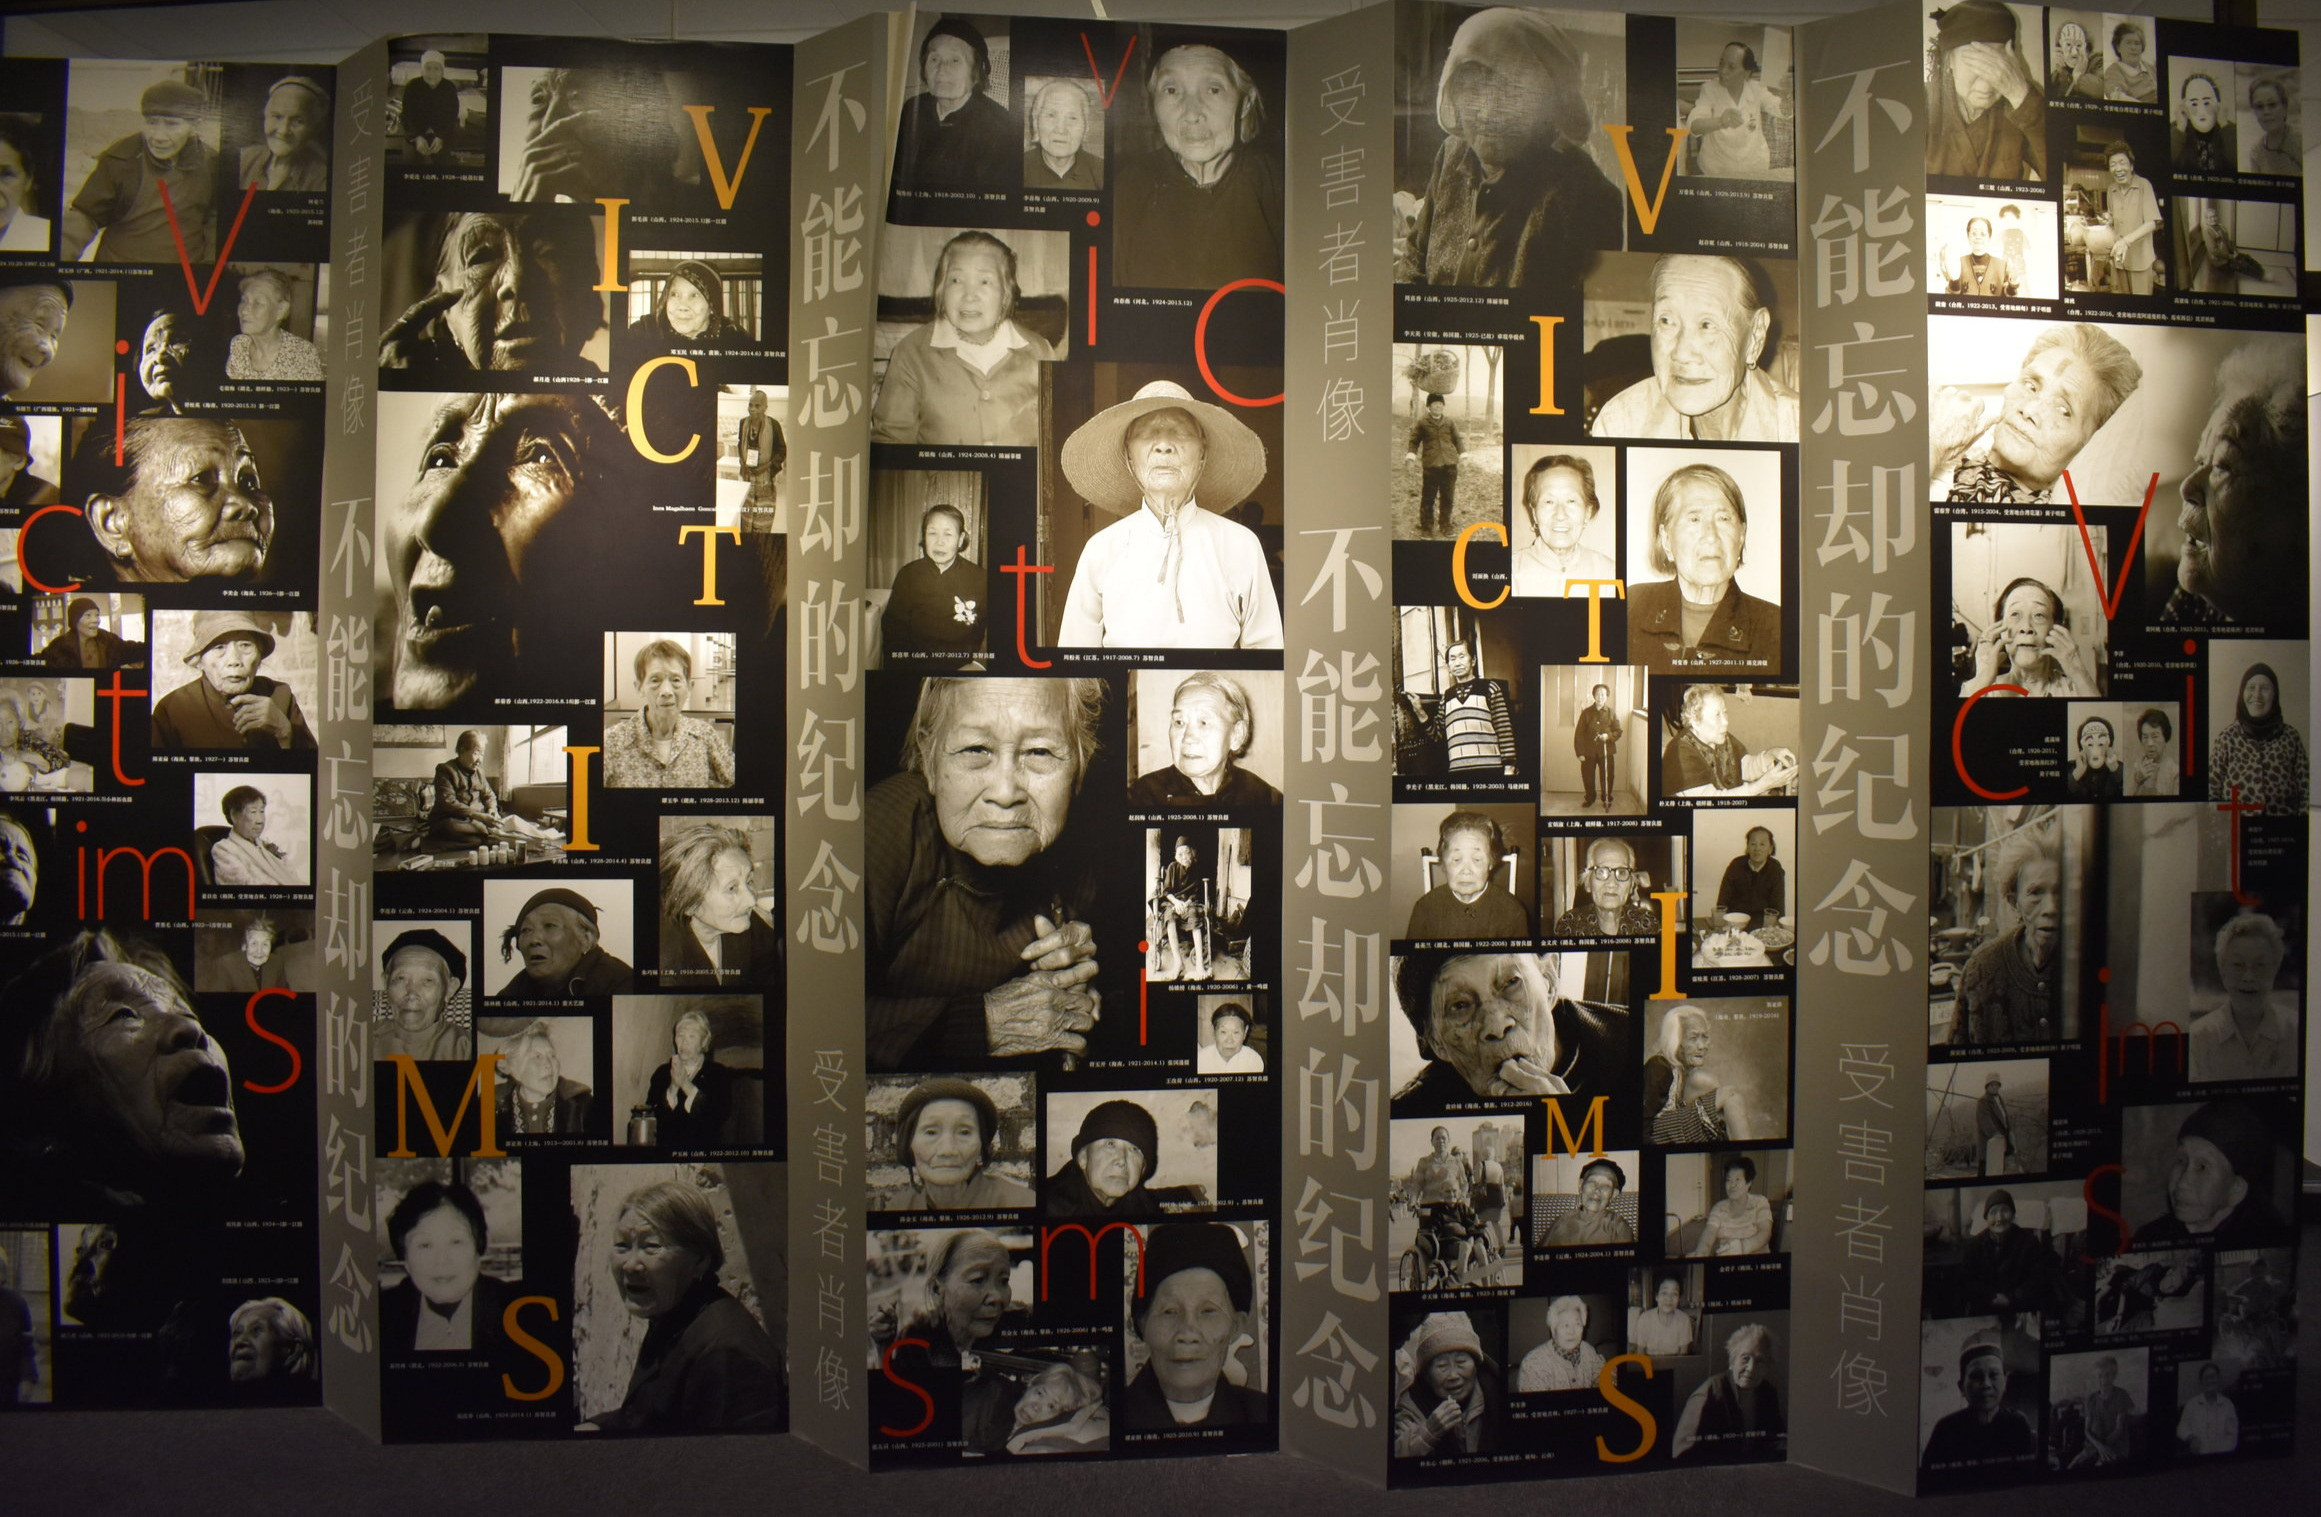 Collage - Victims display